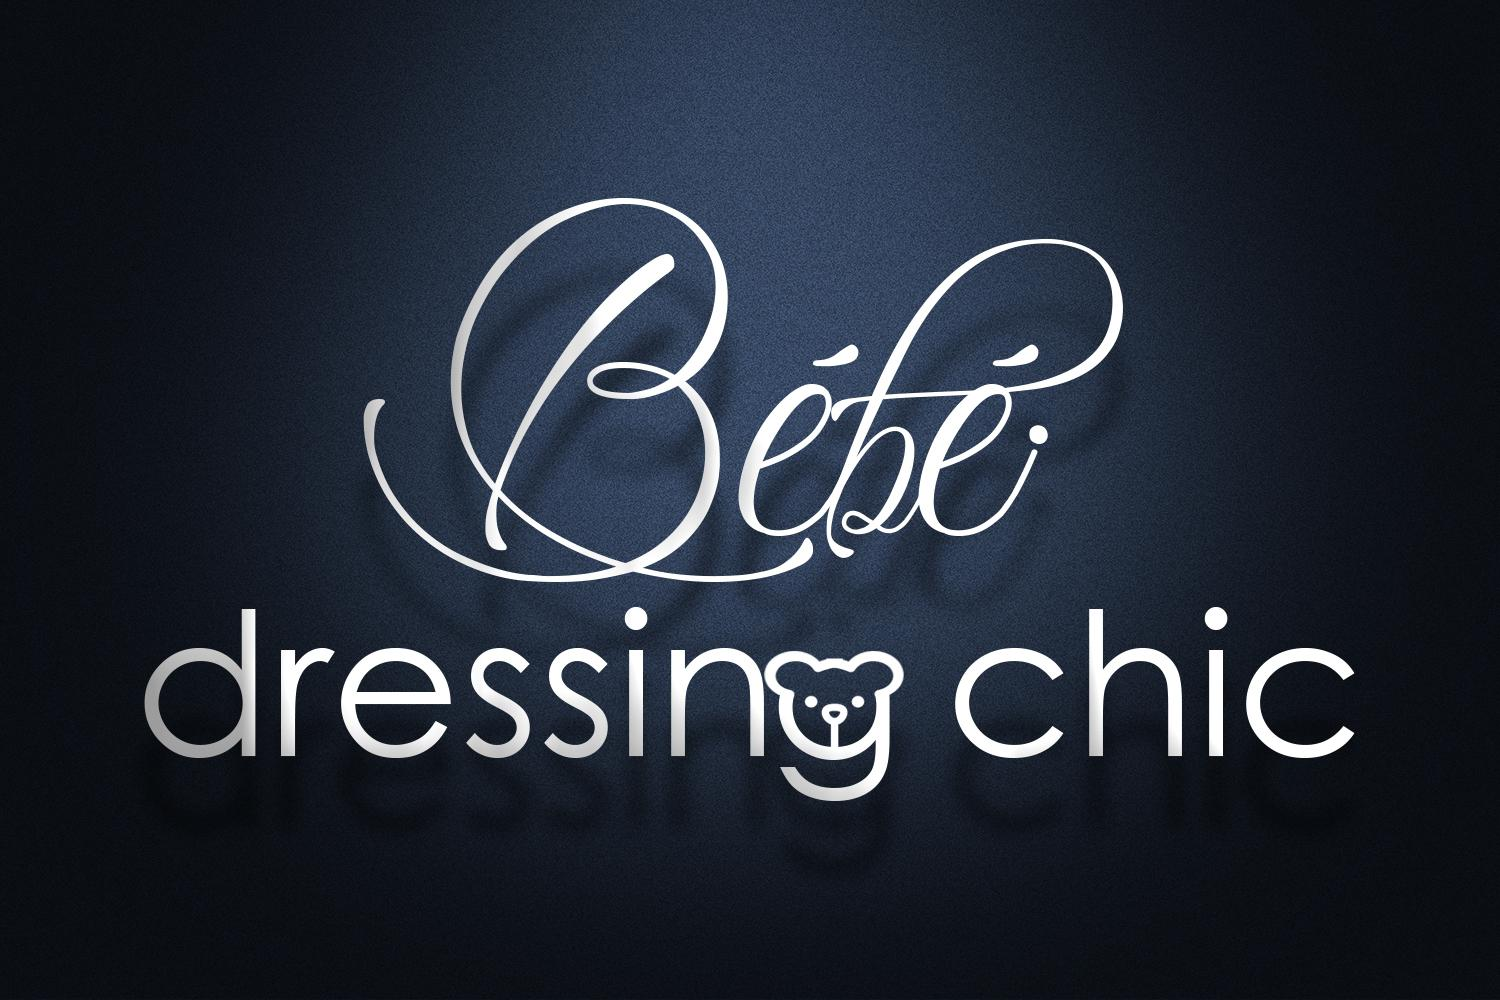 Logotype bebe dressing chic